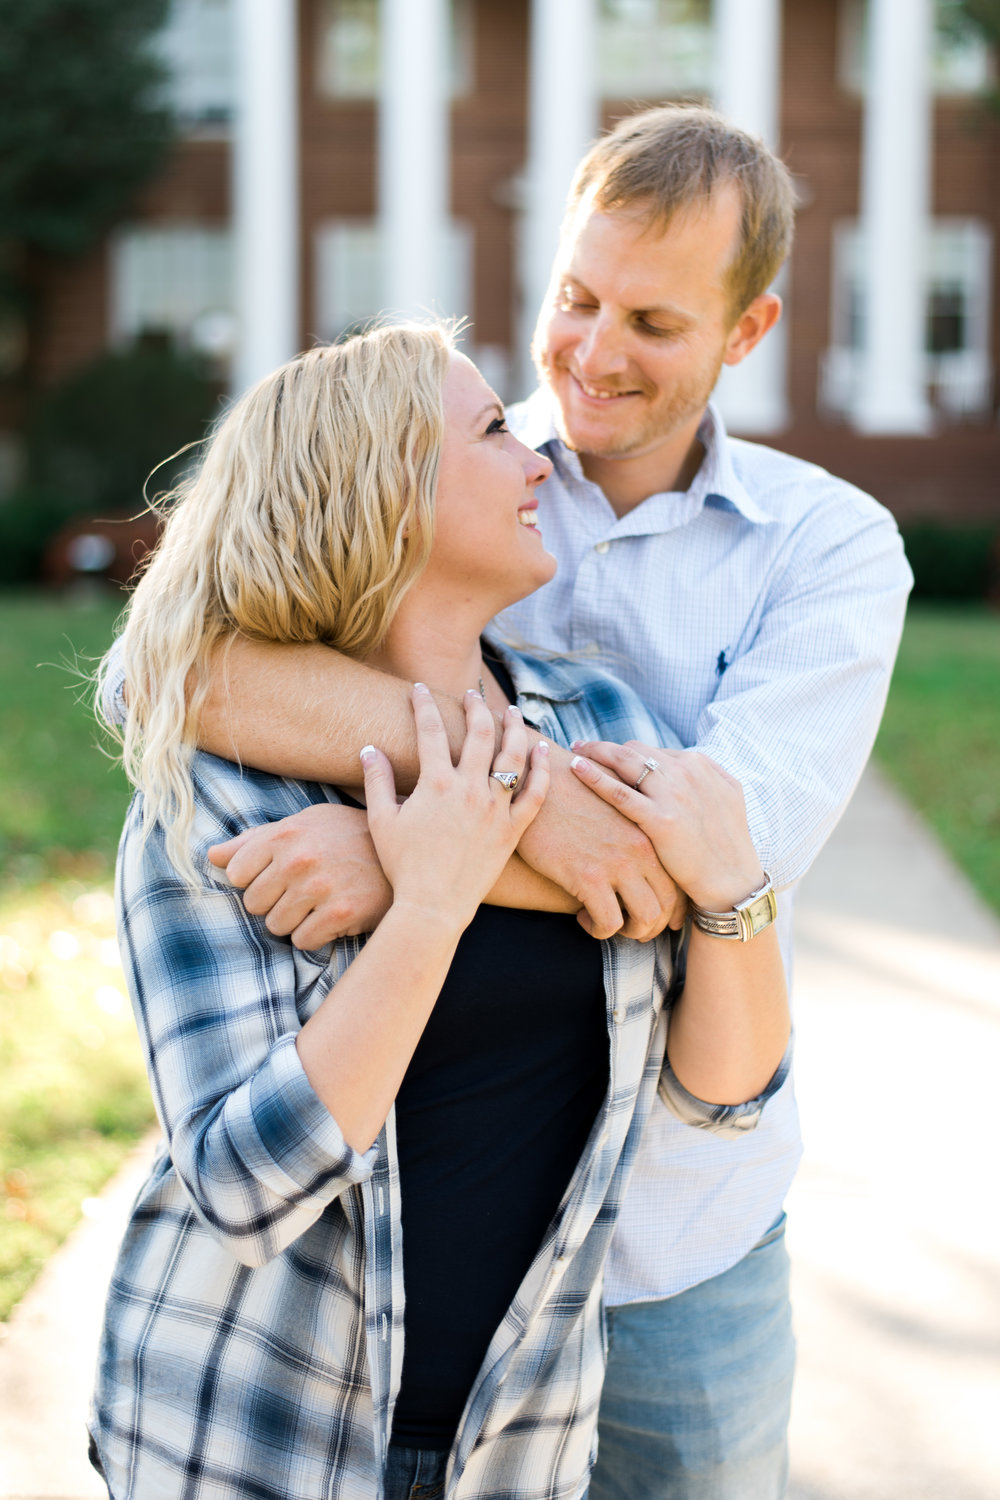 Lynchburg_College_Sorella_Farms_Baseball_Ballet_Virginia_Engagement_Session_Wedding_Photographers (48).jpg